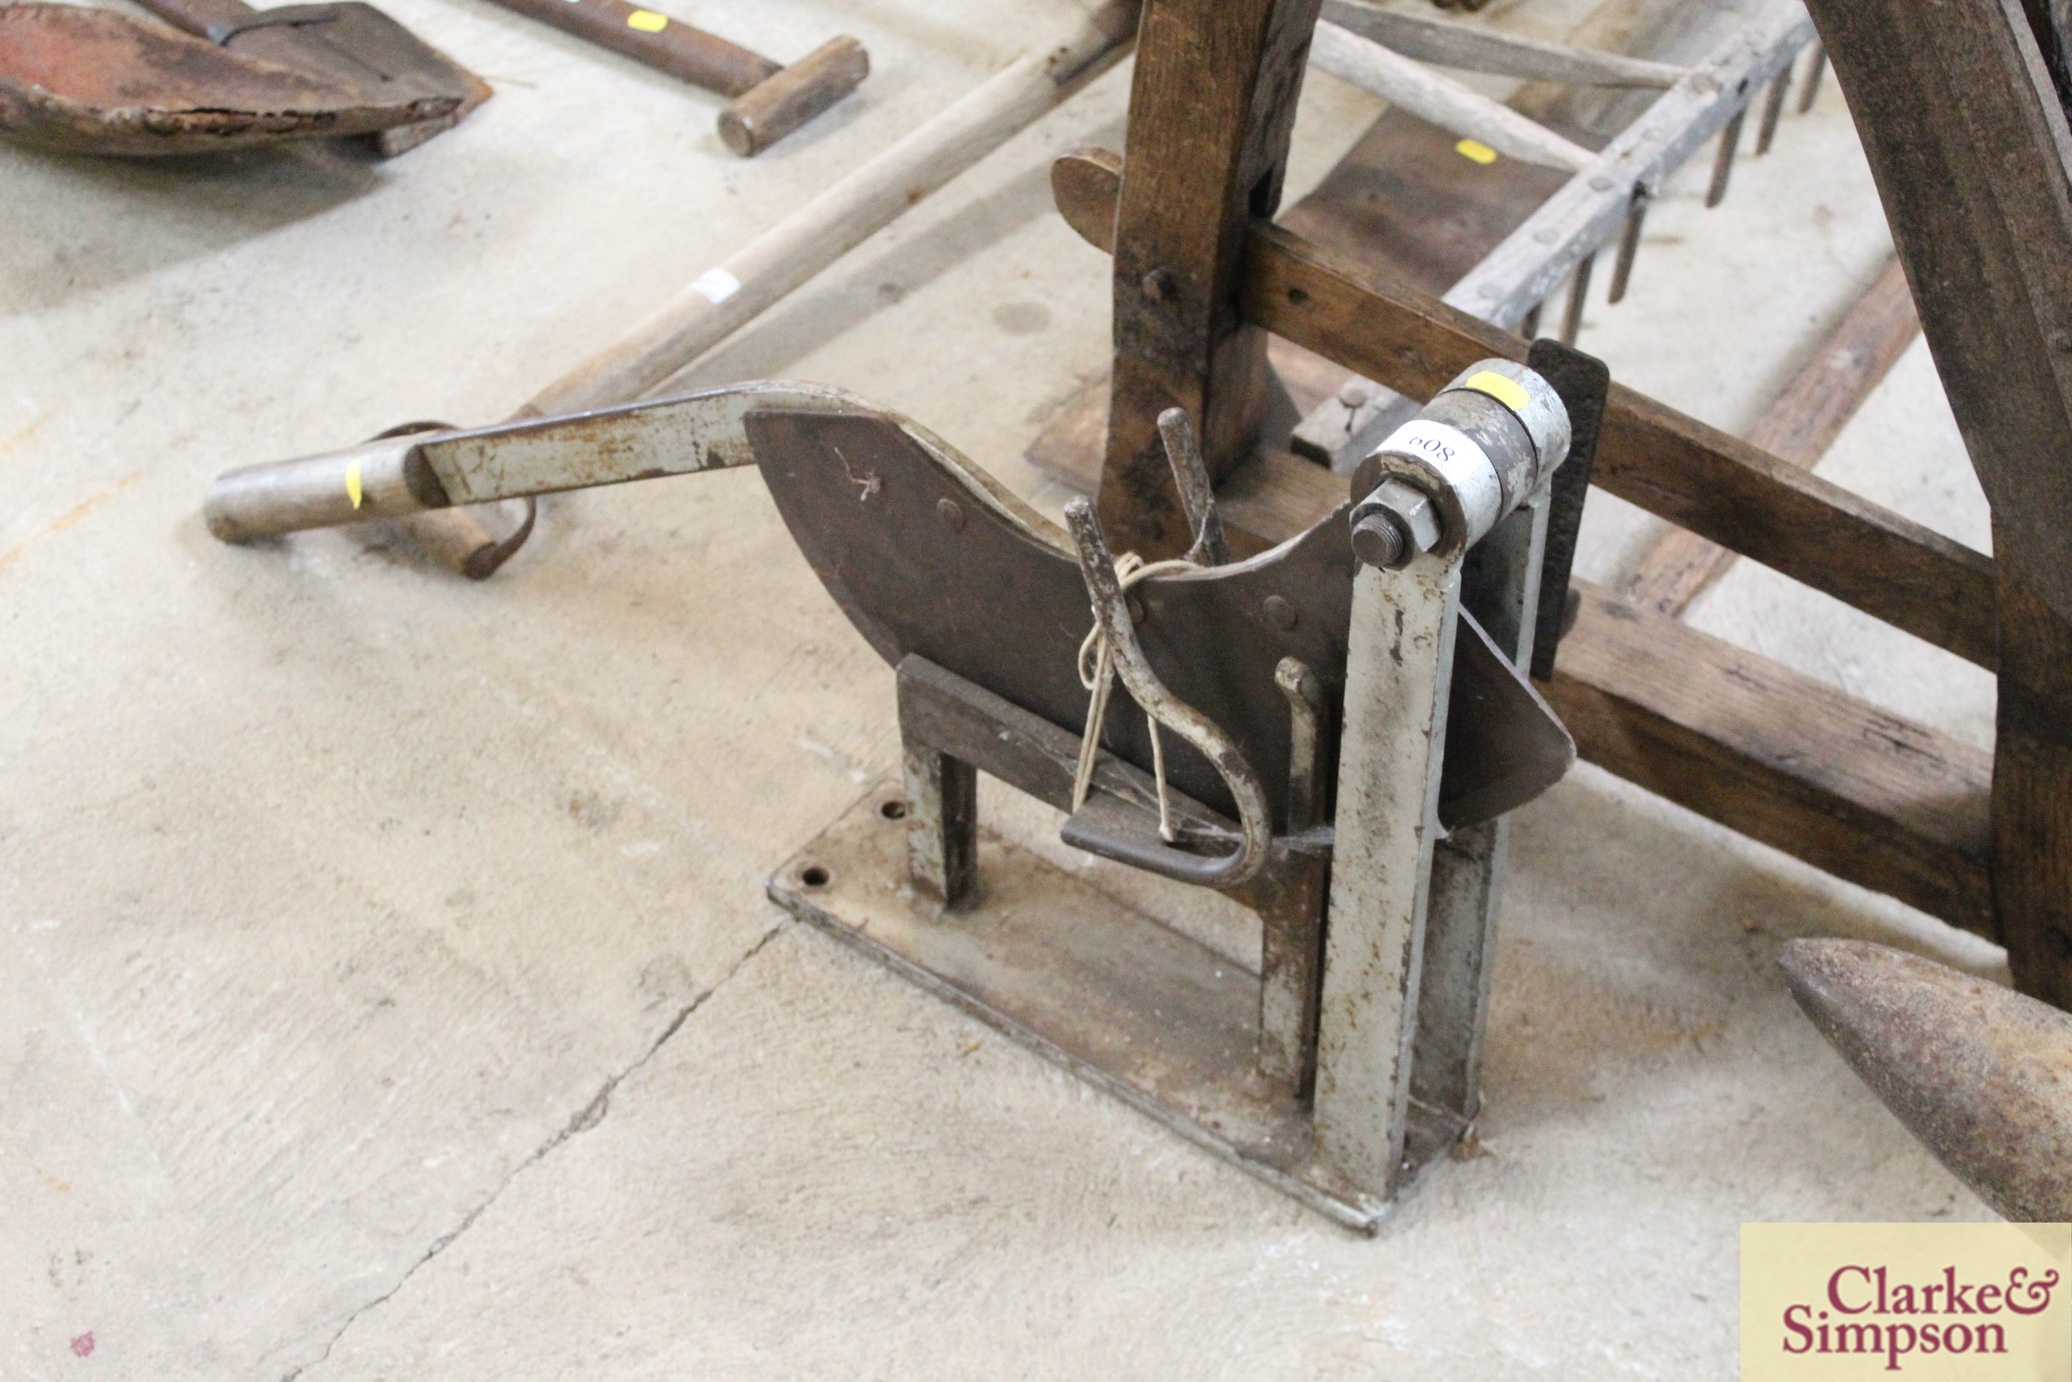 A thatcher's straw slicer - Image 2 of 7